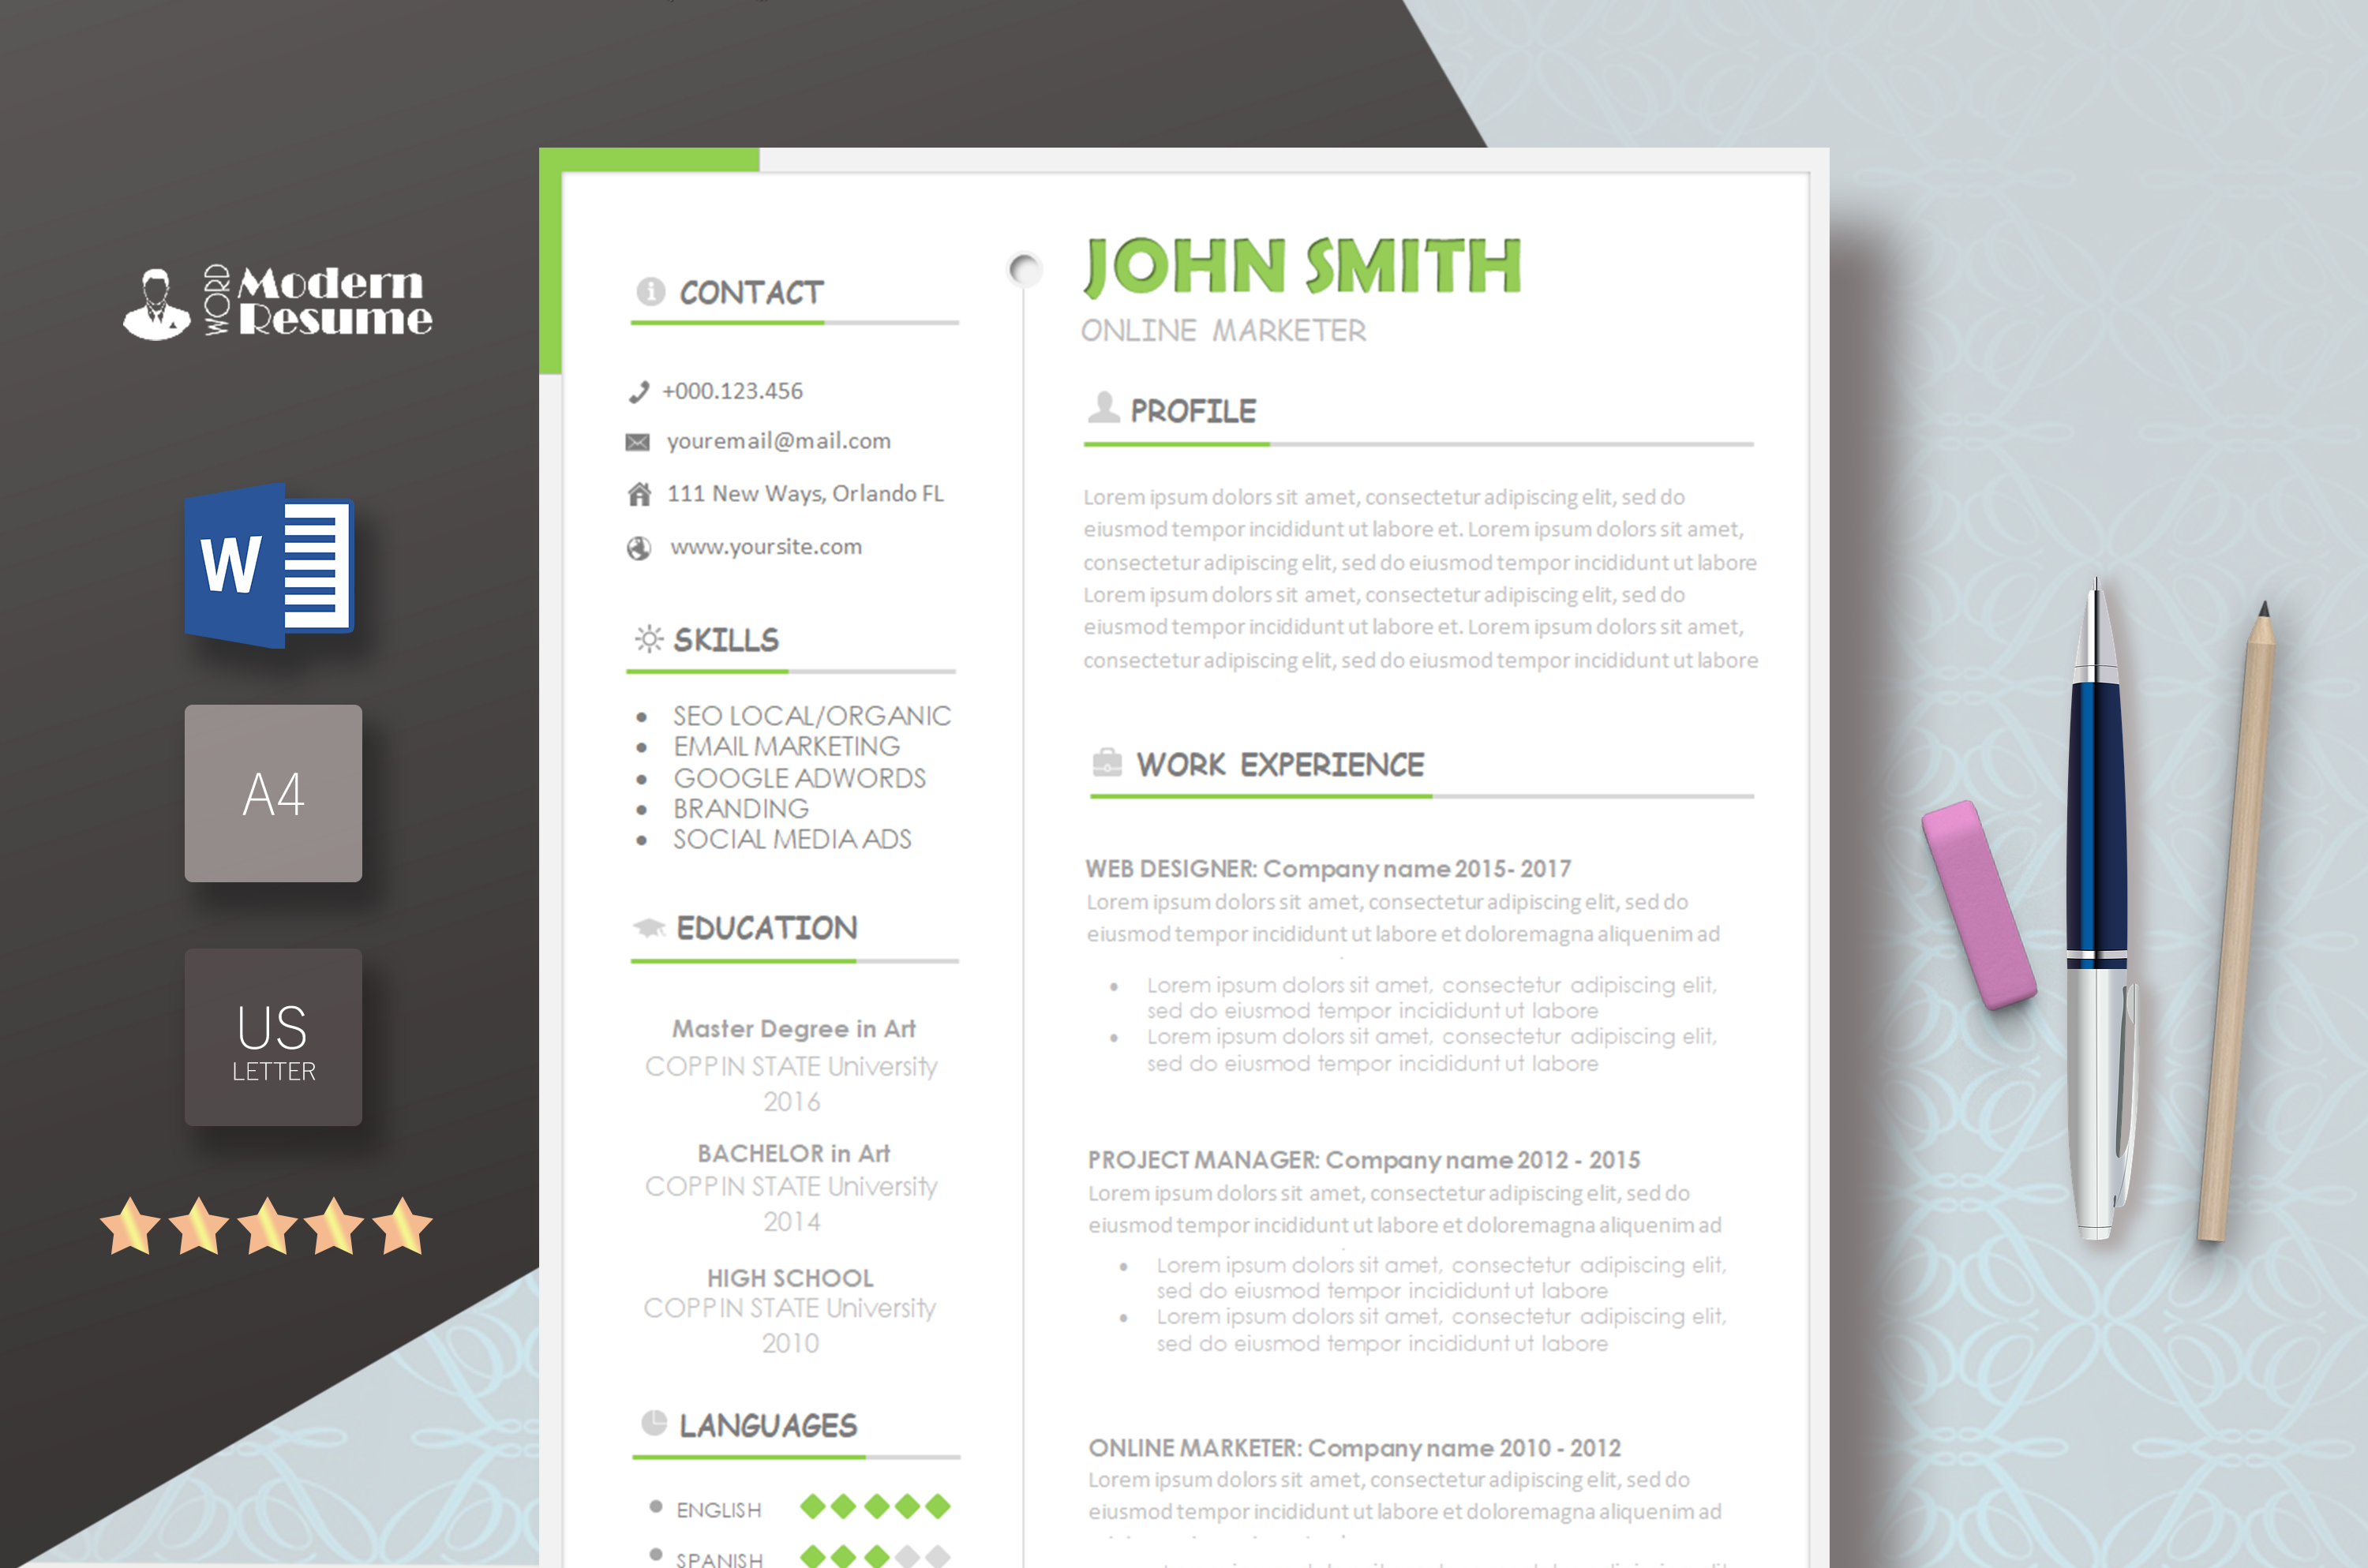 Free Template Modern Resume Templates 2019, Image result